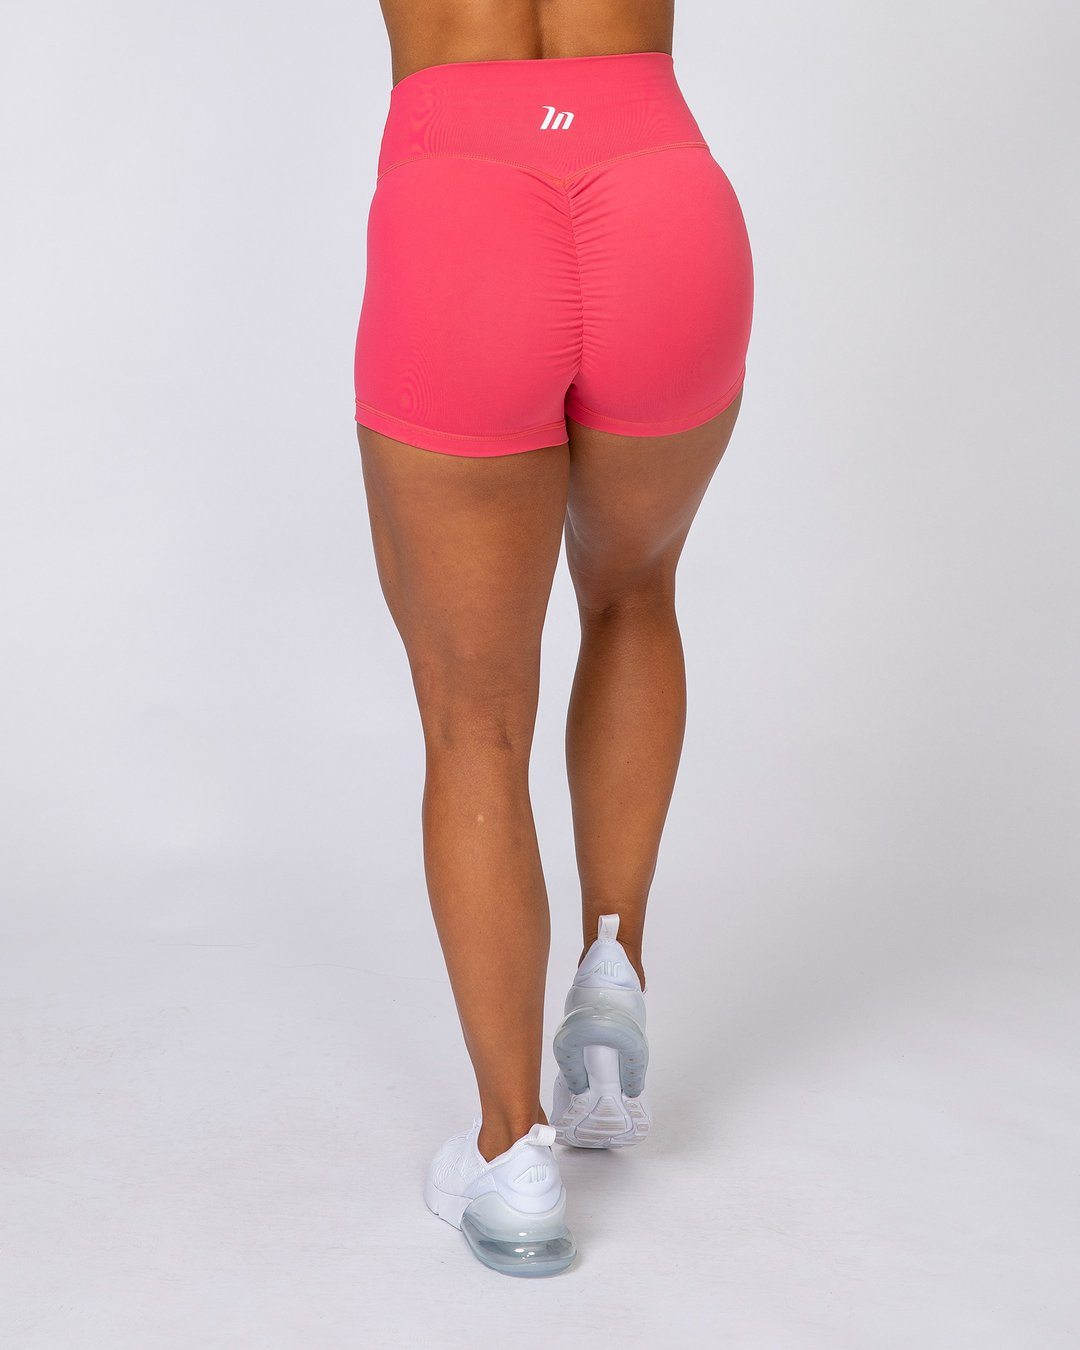 Muscle Nation High Waist Scrunch Shorts - Watermelon